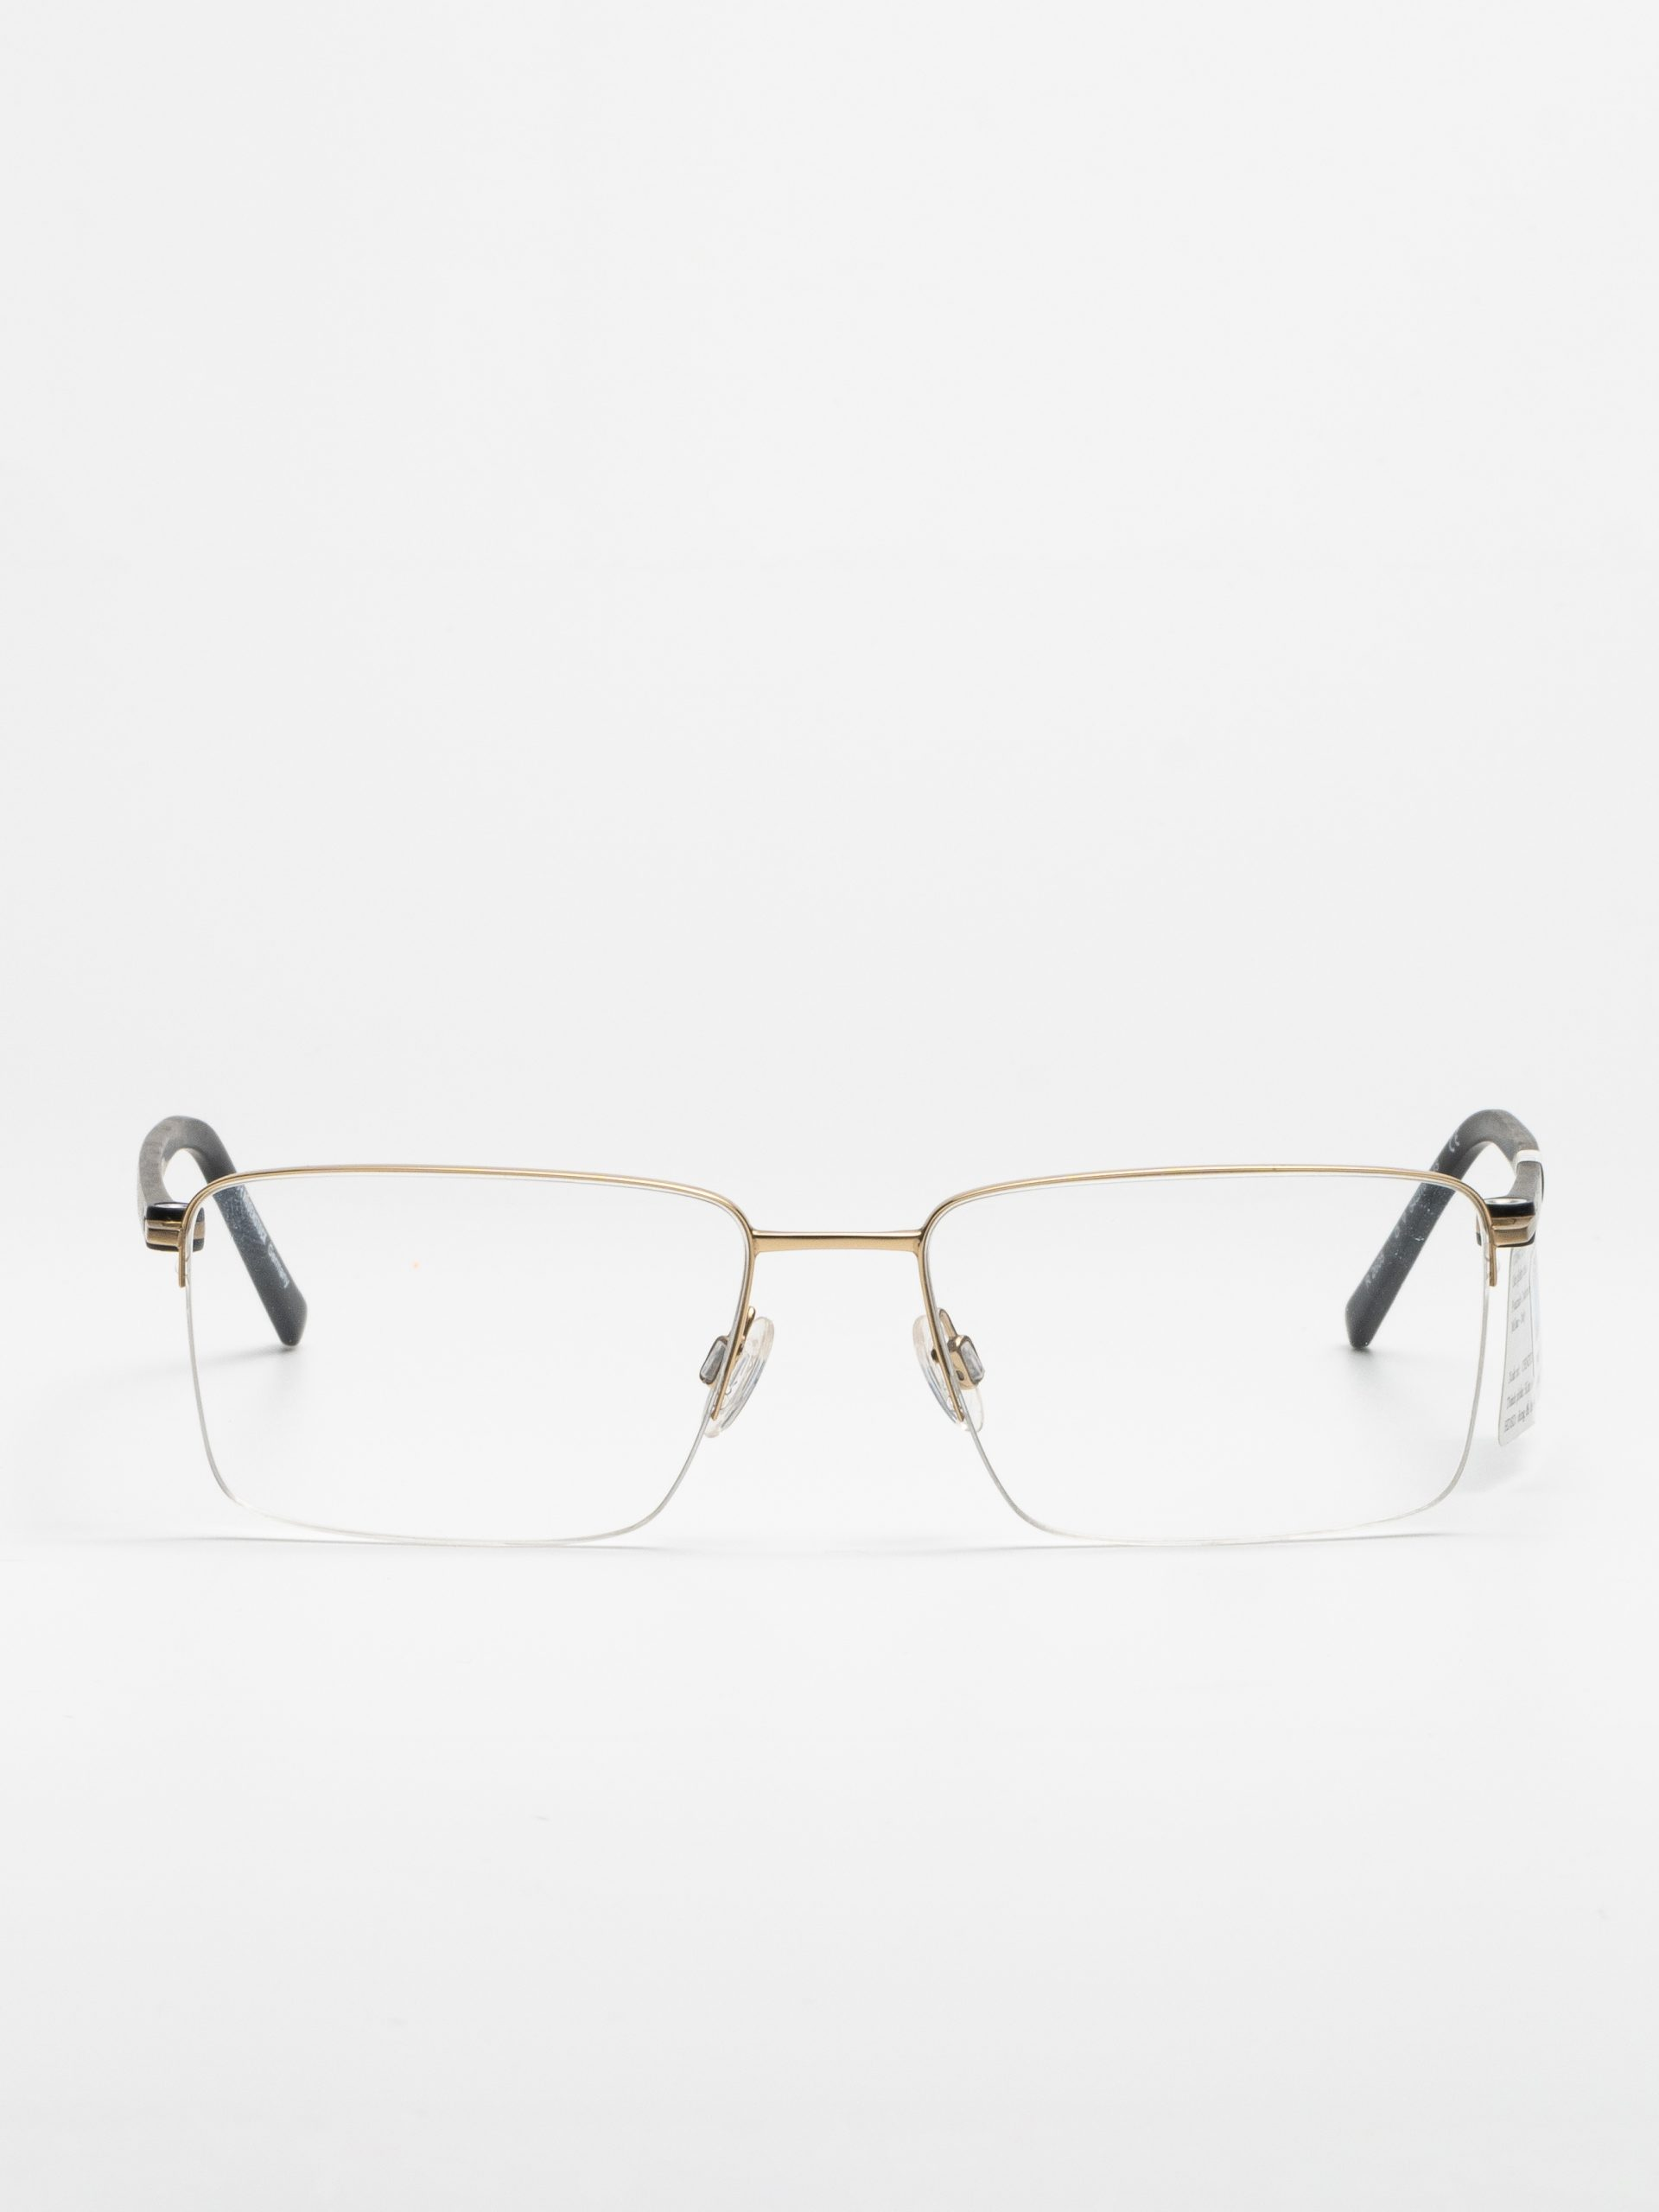 Gong kinh Rodenstock R2605 D